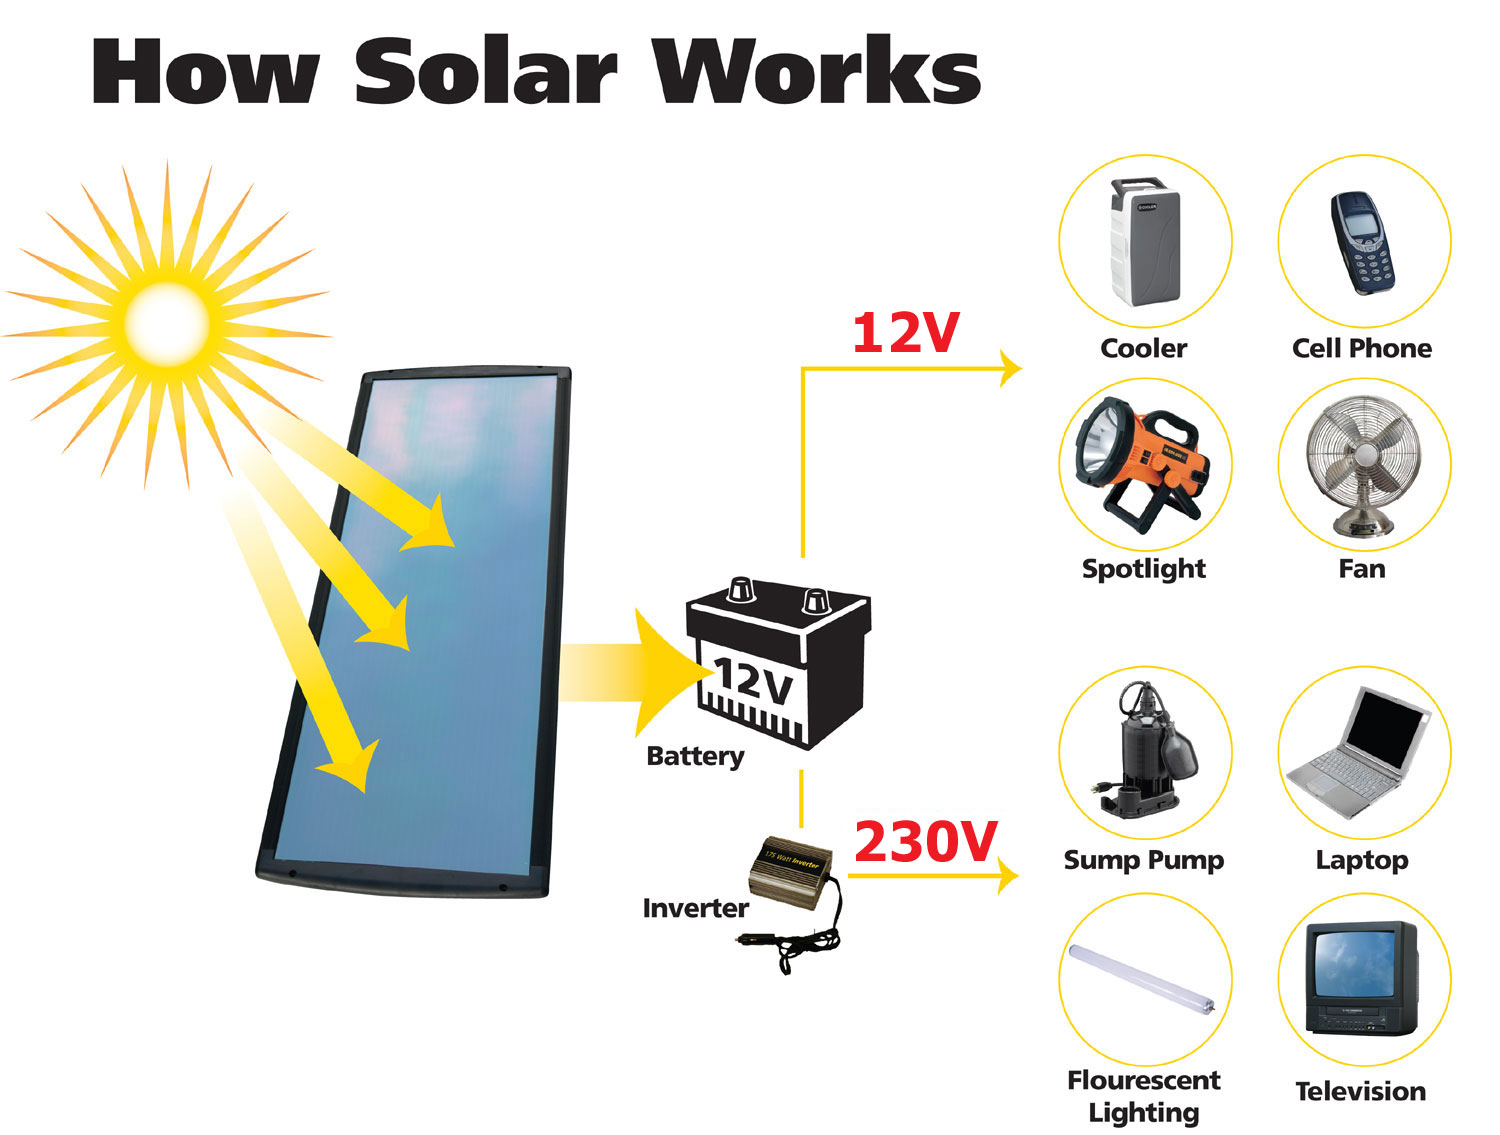 Introduction to Photovoltaics in Non-Technical Terms